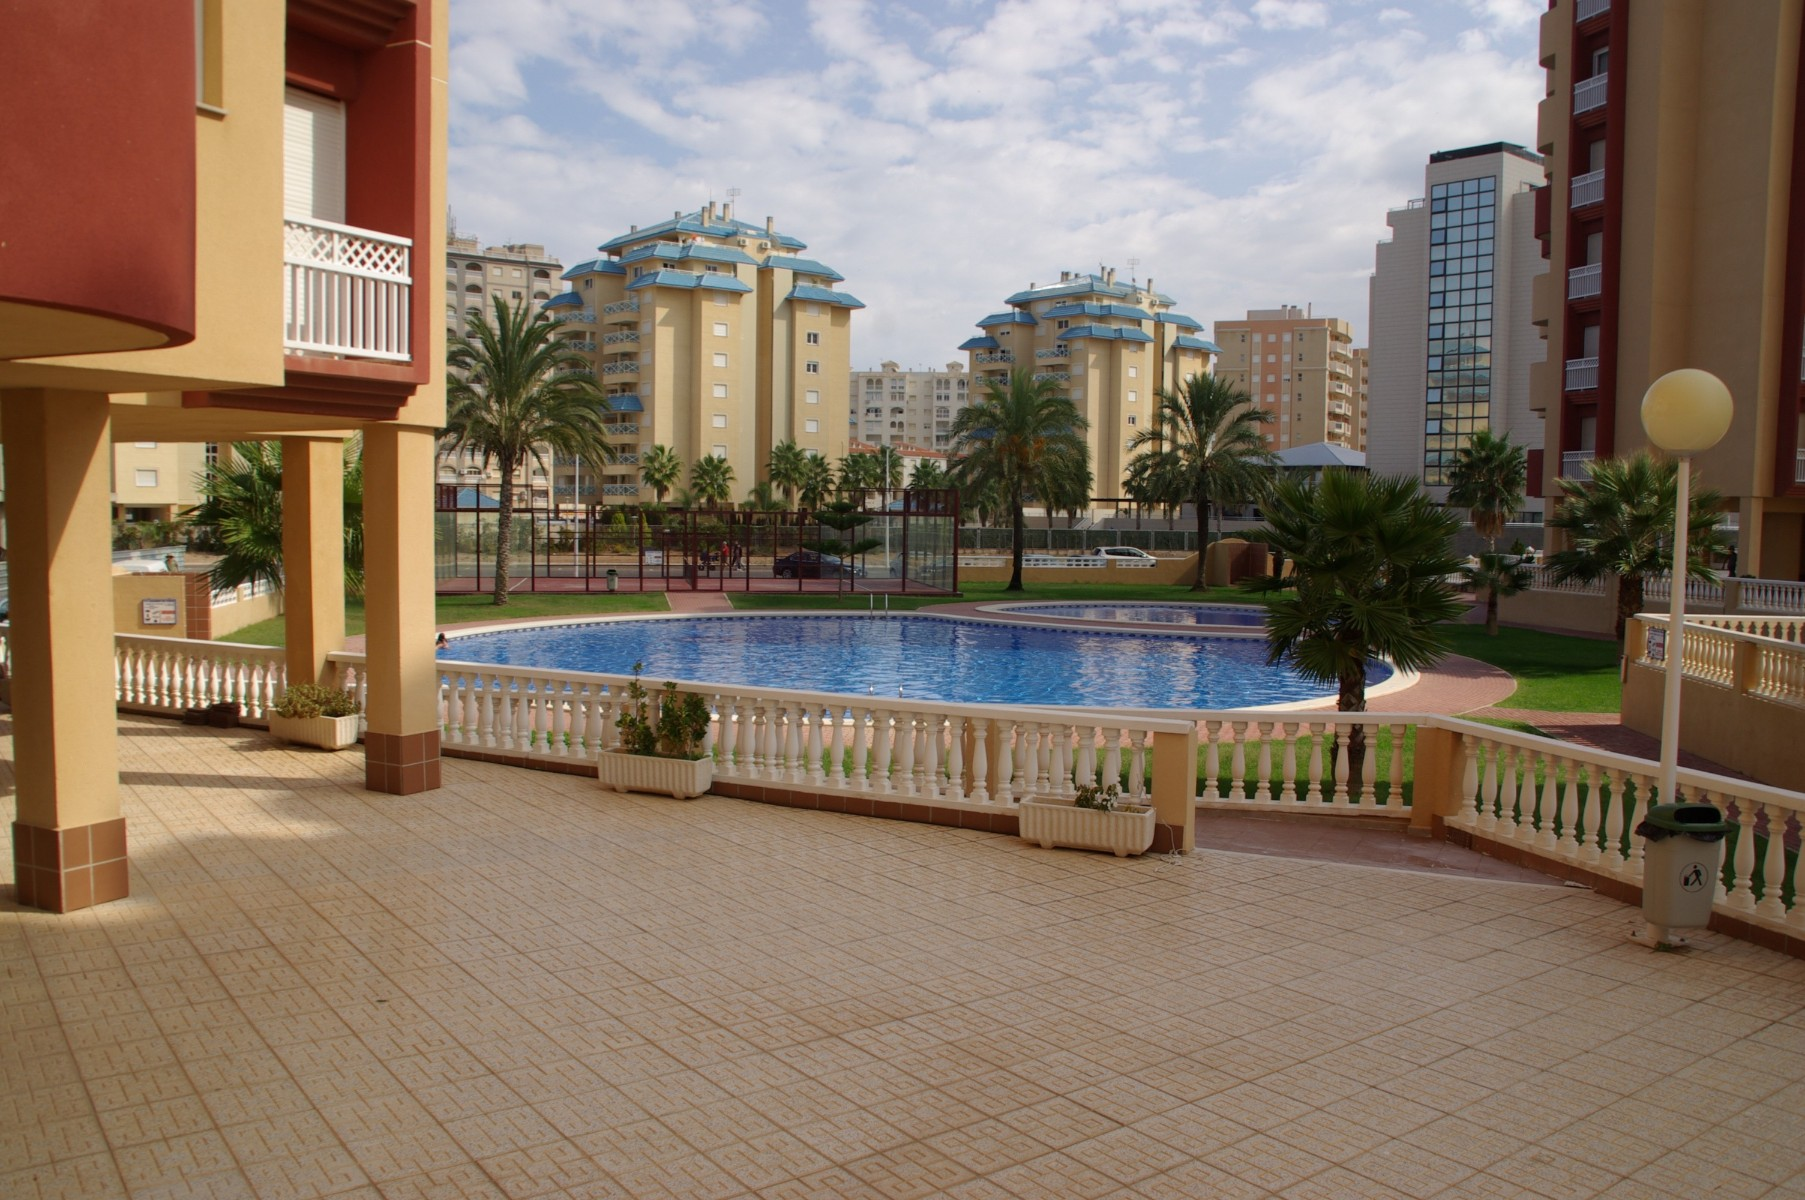 For sale: 2 bedroom apartment / flat in La Manga del Mar Menor